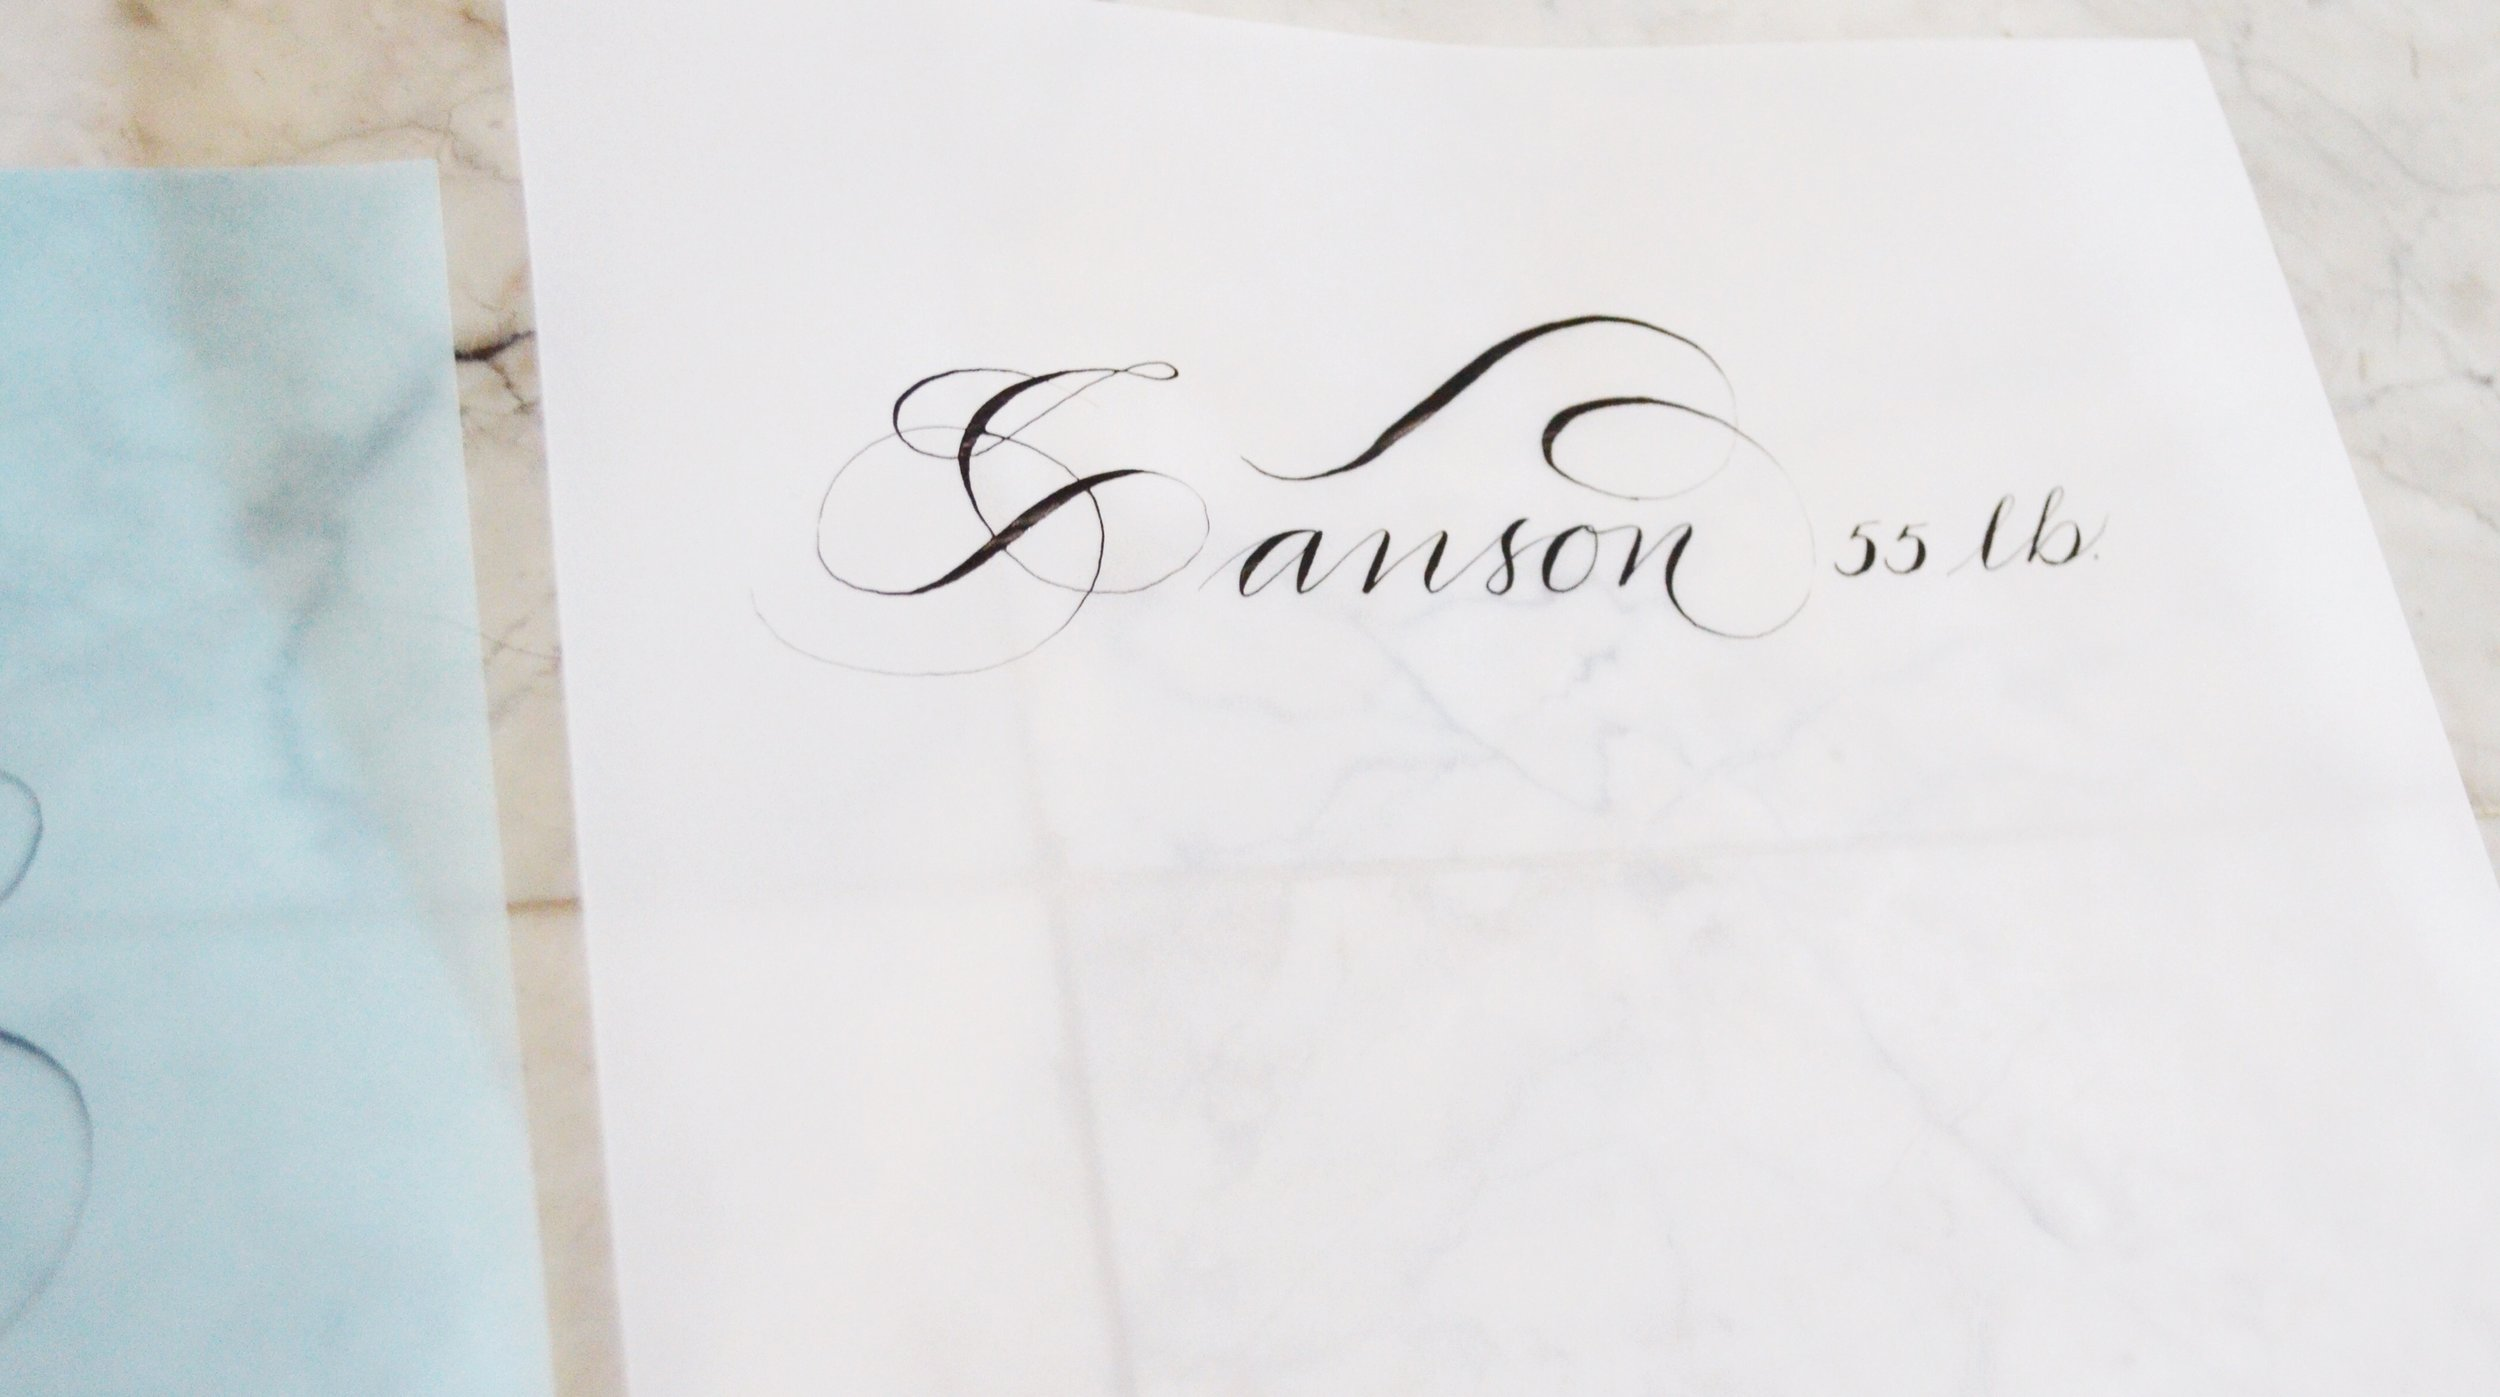 Yes, flourishing mistakes all around, but I wanted to see the comparison of the vellum....not bad.